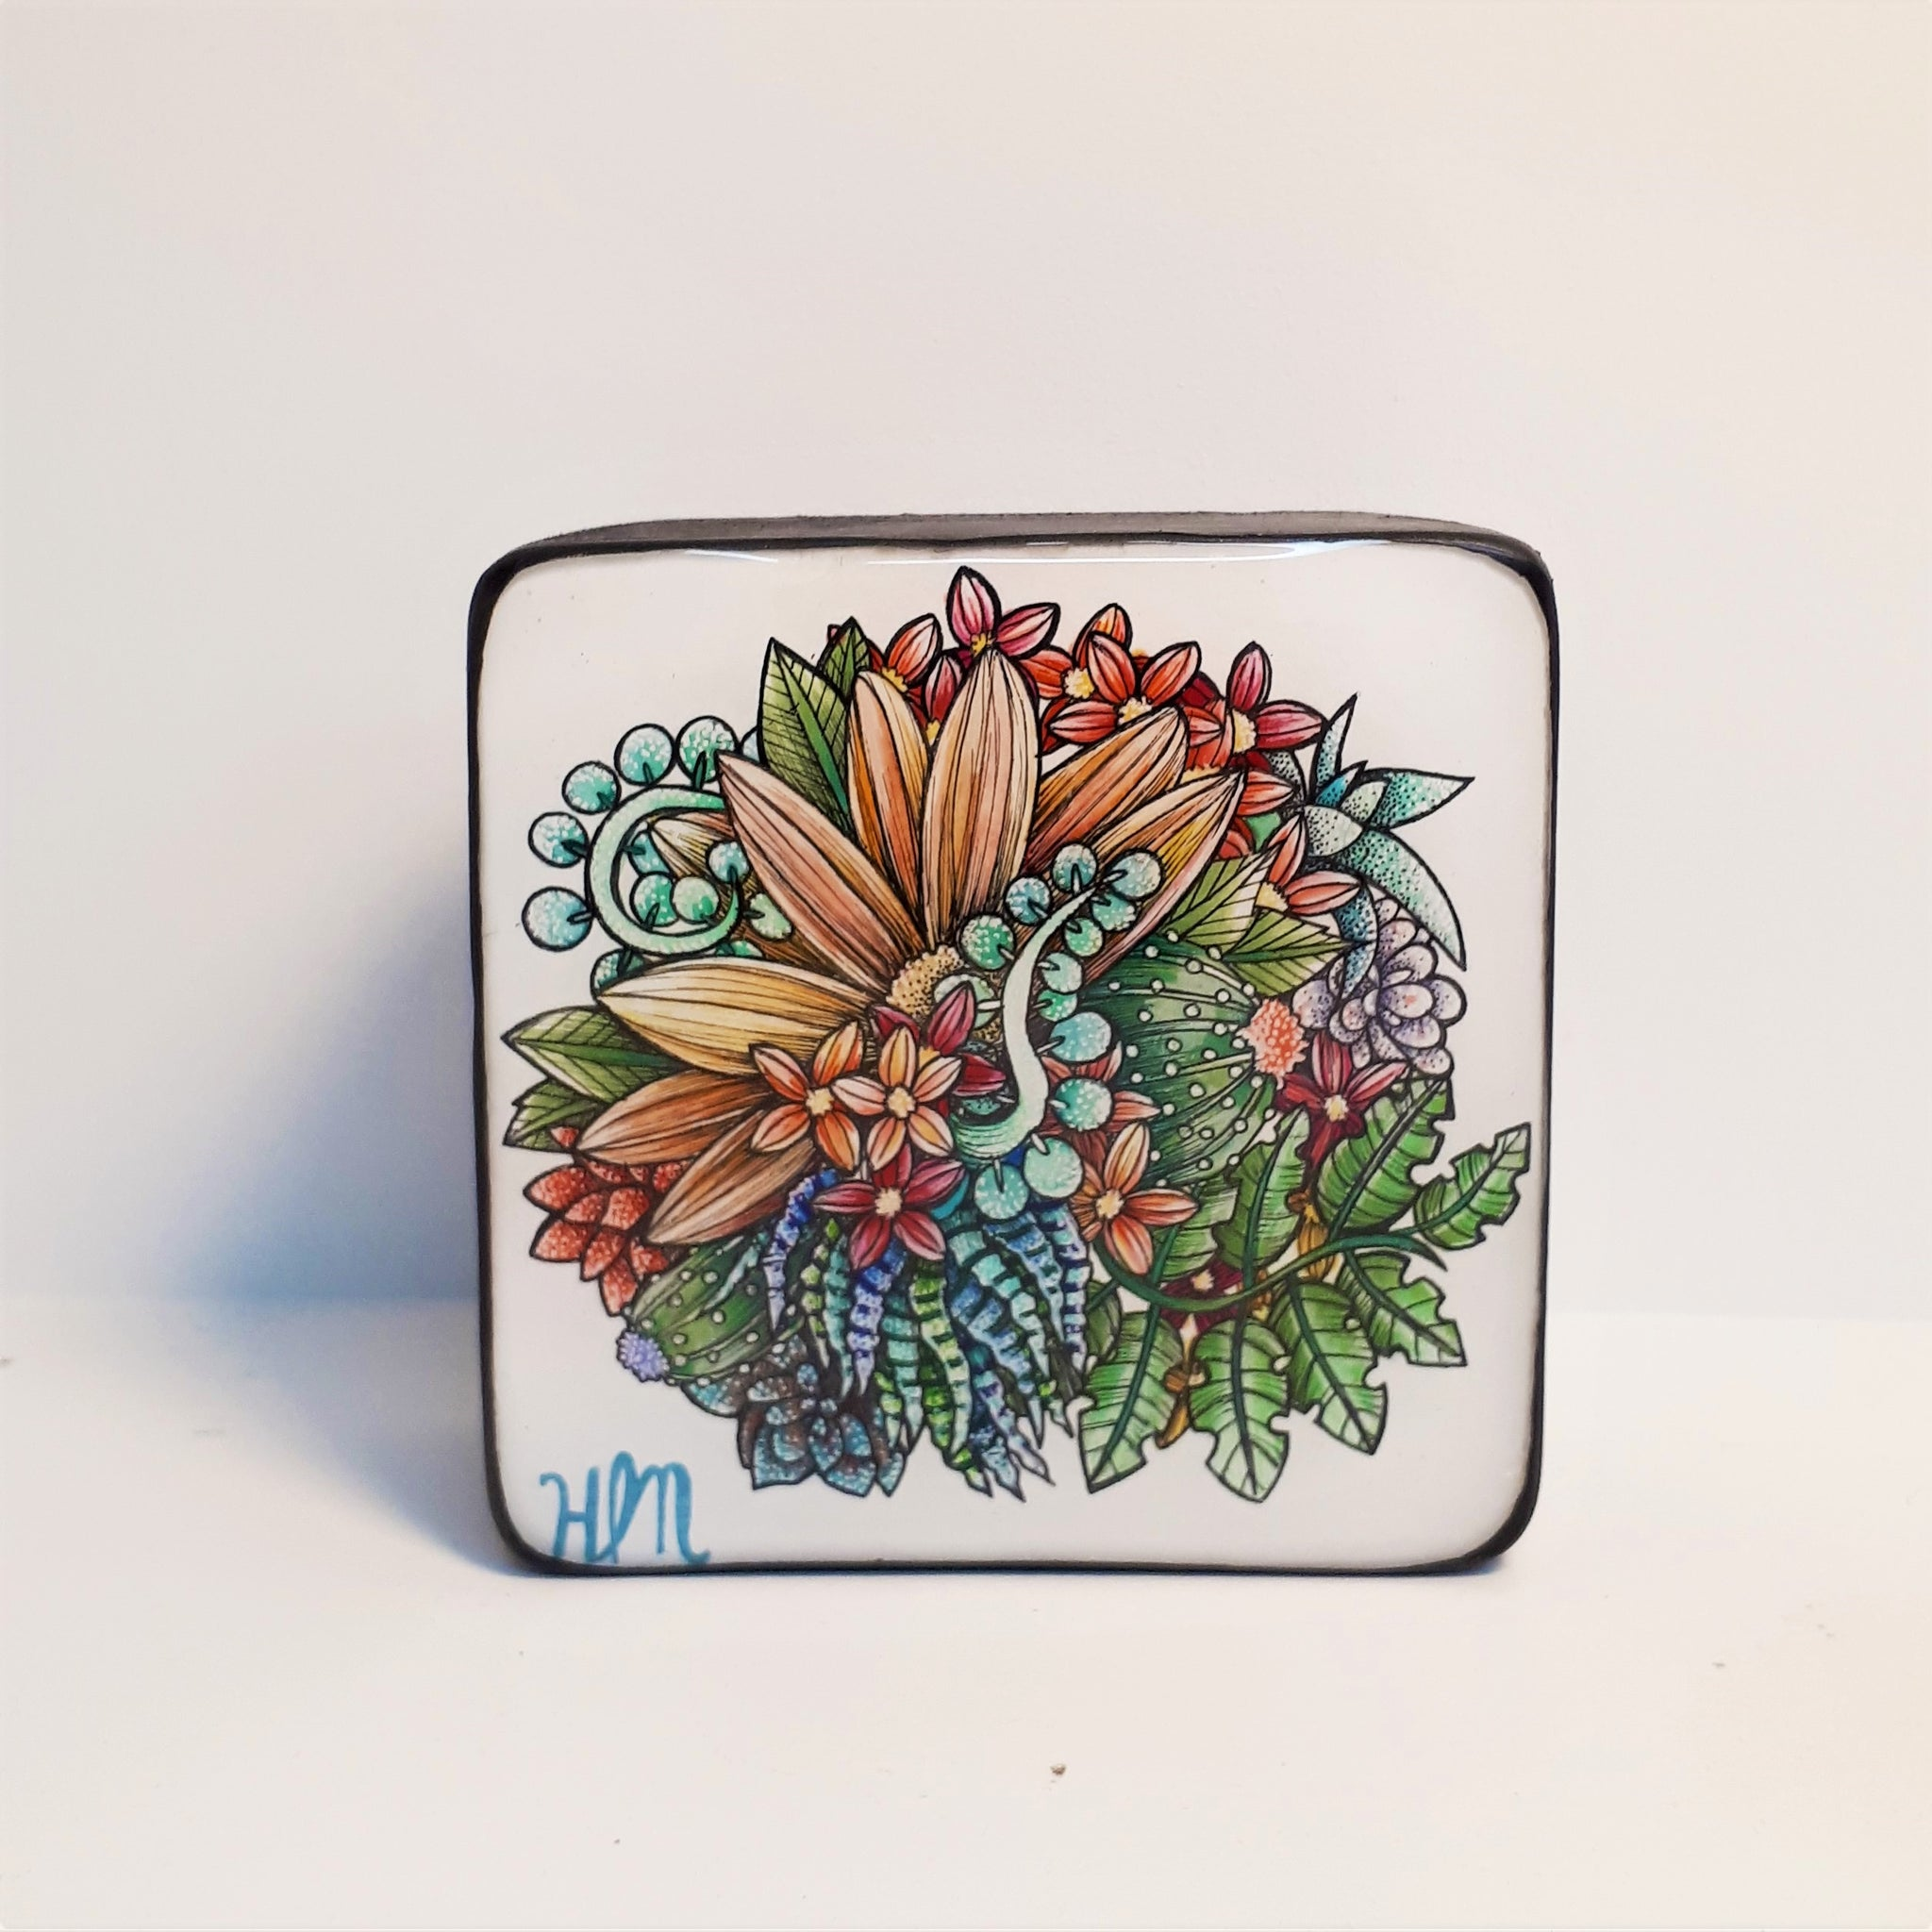 Original Small Floral work by Canadian Artist Hanna Mark